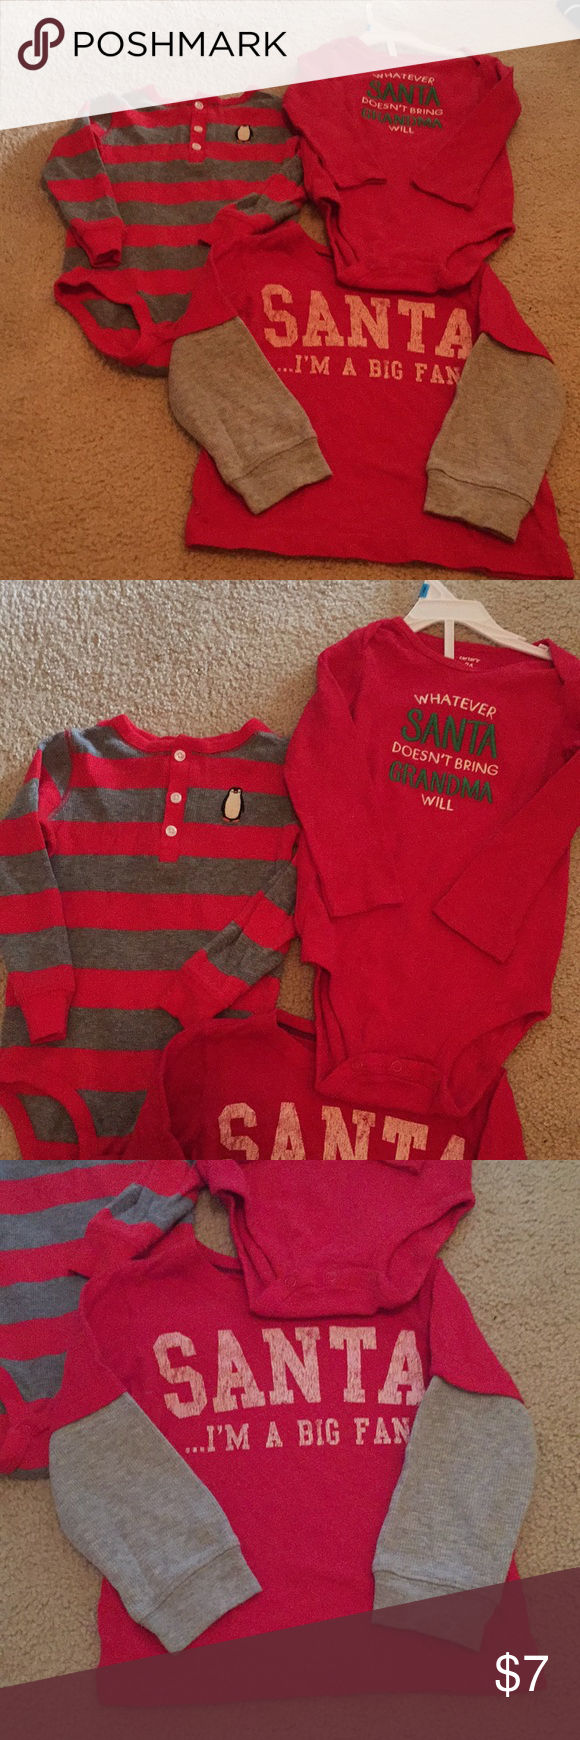 2f25cdcc3 3 piece carter s Christmas bundle All worn once except Santa onesie ...